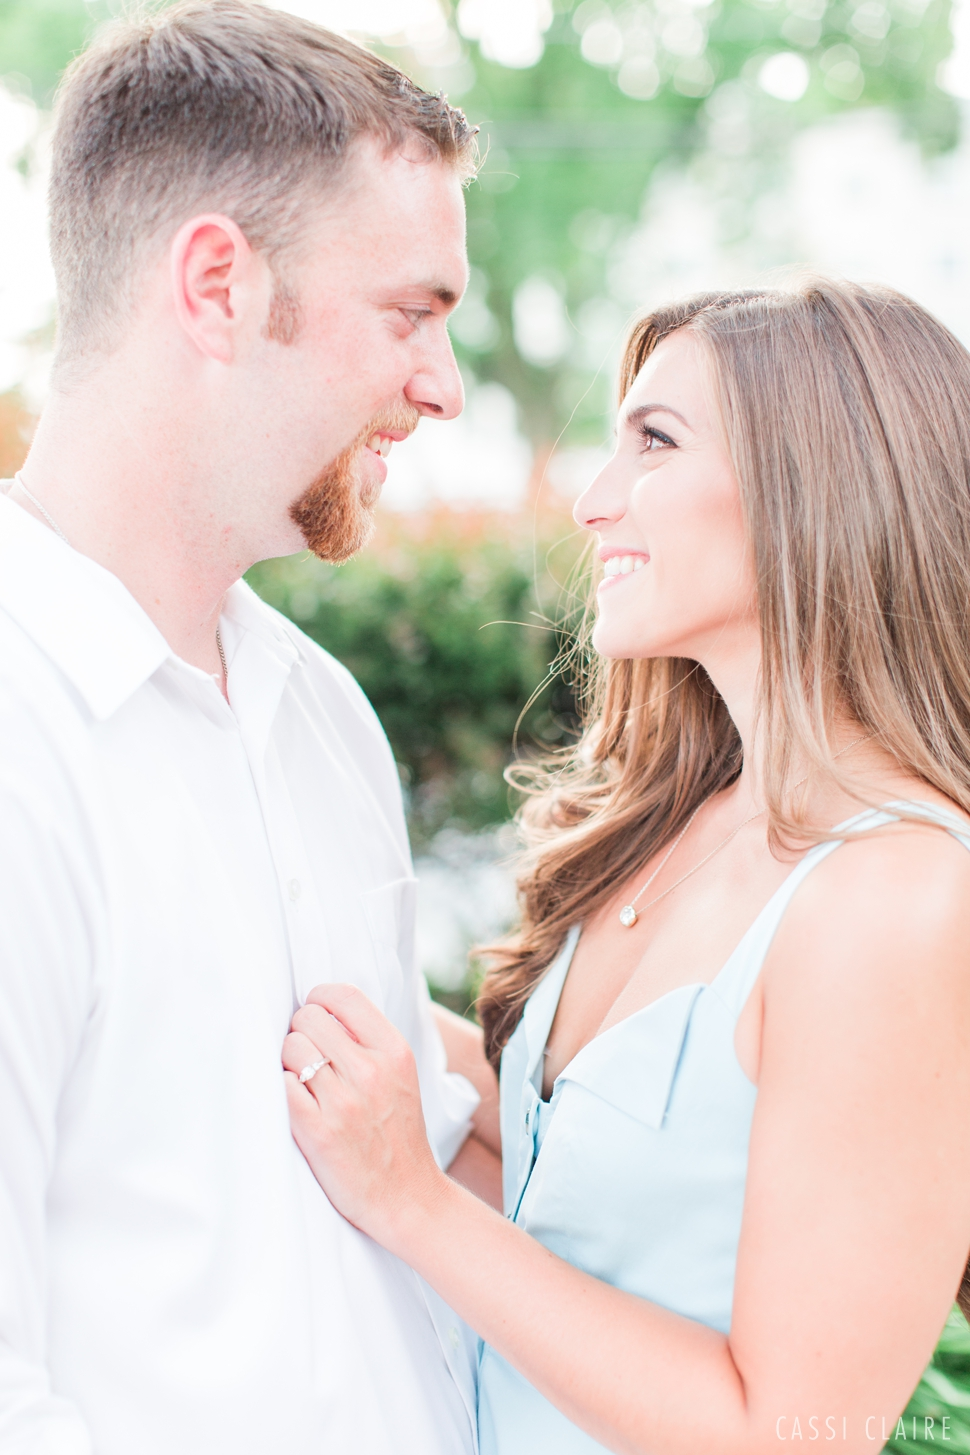 NJ-Engagement-Photos_Cassi-Claire_36.jpg